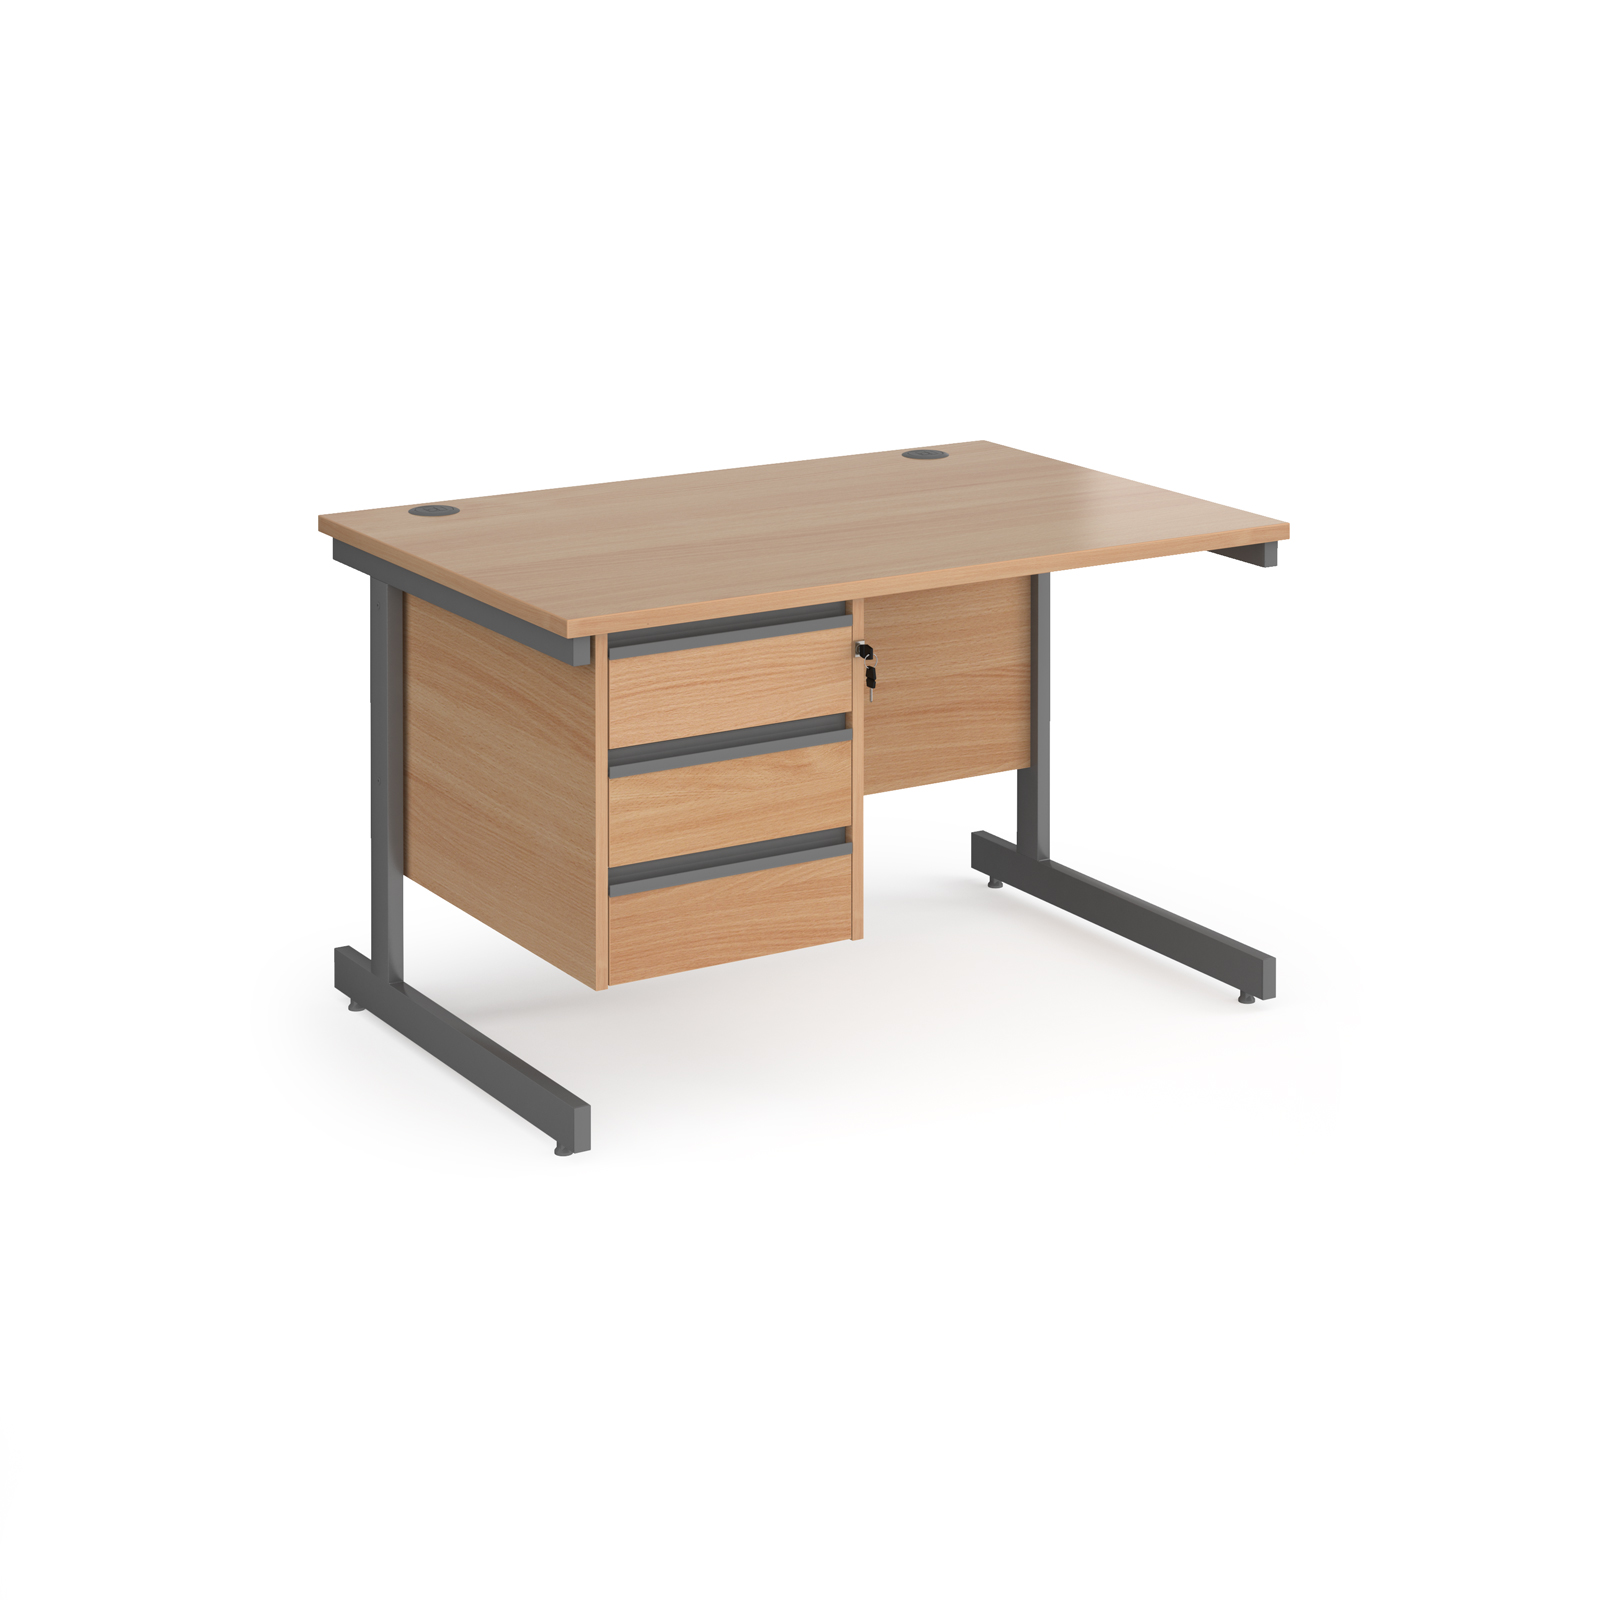 Contract 25 cantilever leg straight desk with 3 drawer pedestal